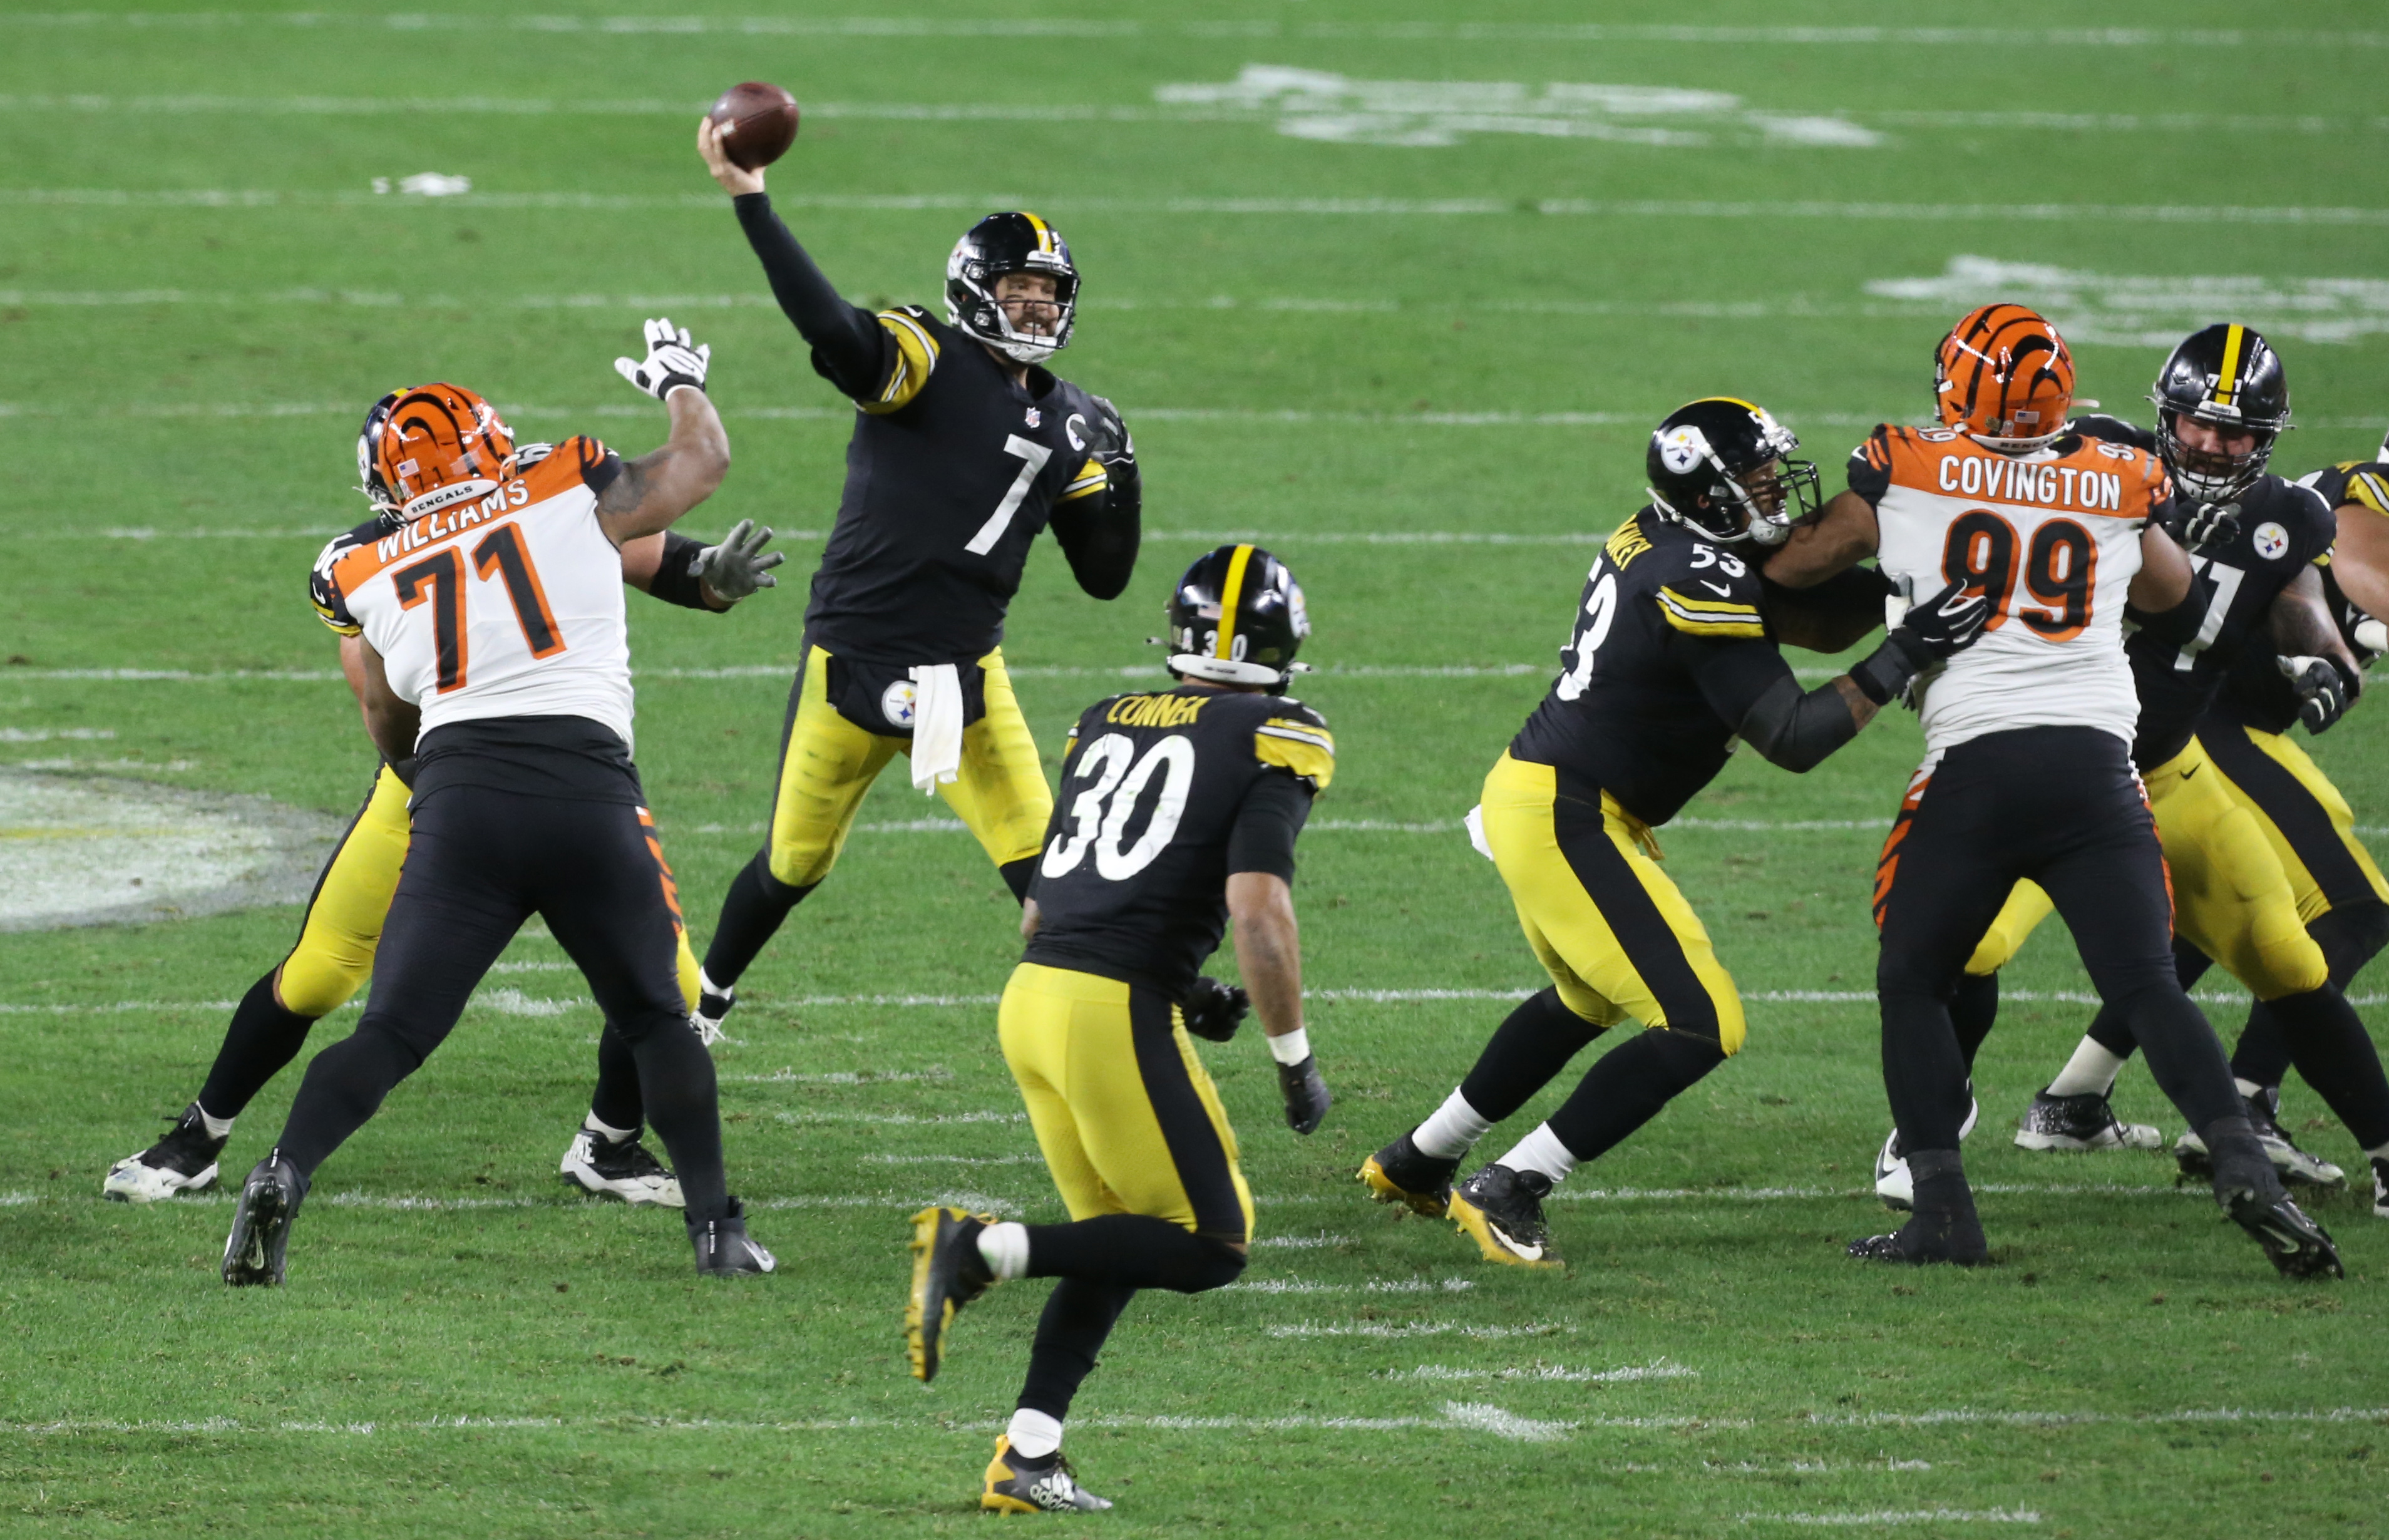 Pittsburgh Steelers quarterback Ben Roethlisberger (7) passes against the Cincinnati Bengals during the third quarter at Heinz Field. The Steelers won 36-10.